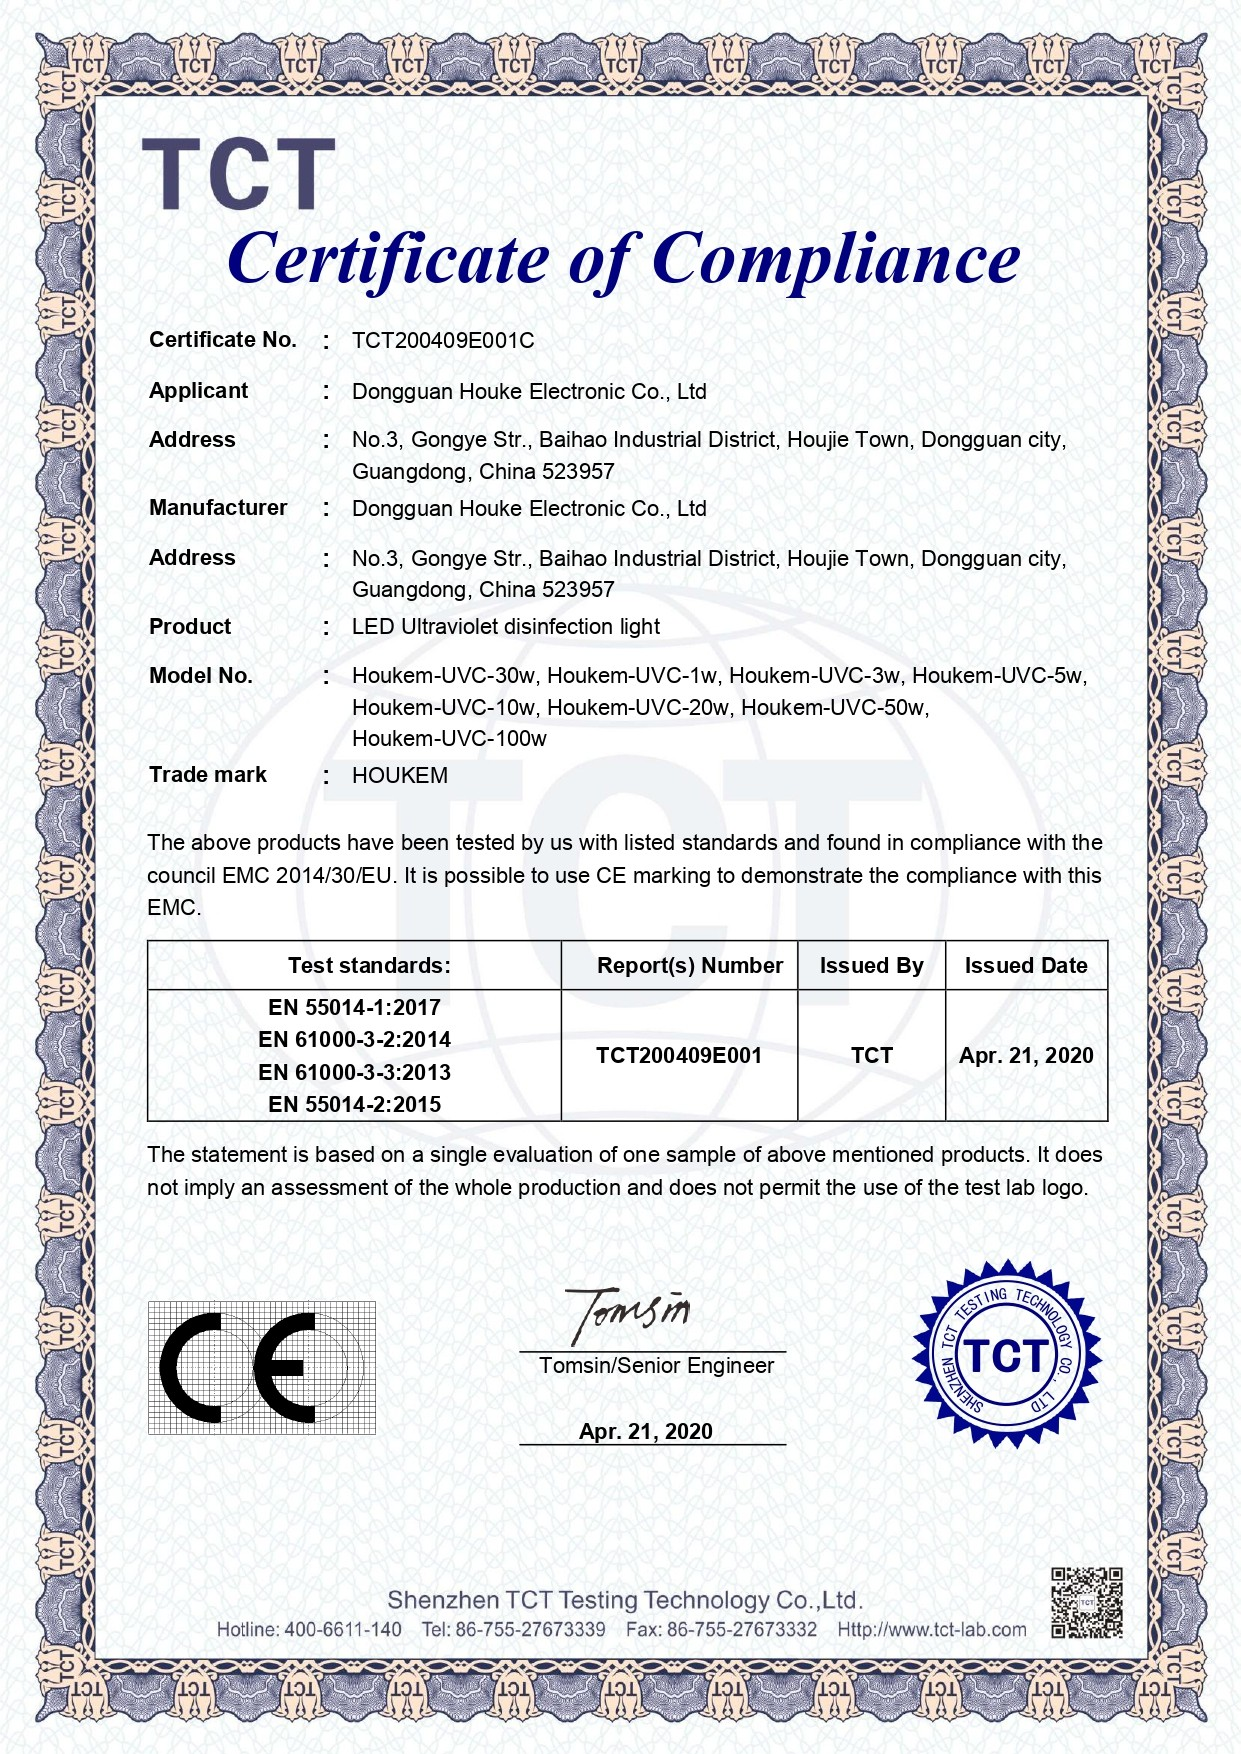 Houkem LED Ultraviolet disinfection light CE certificate for different UVC LED